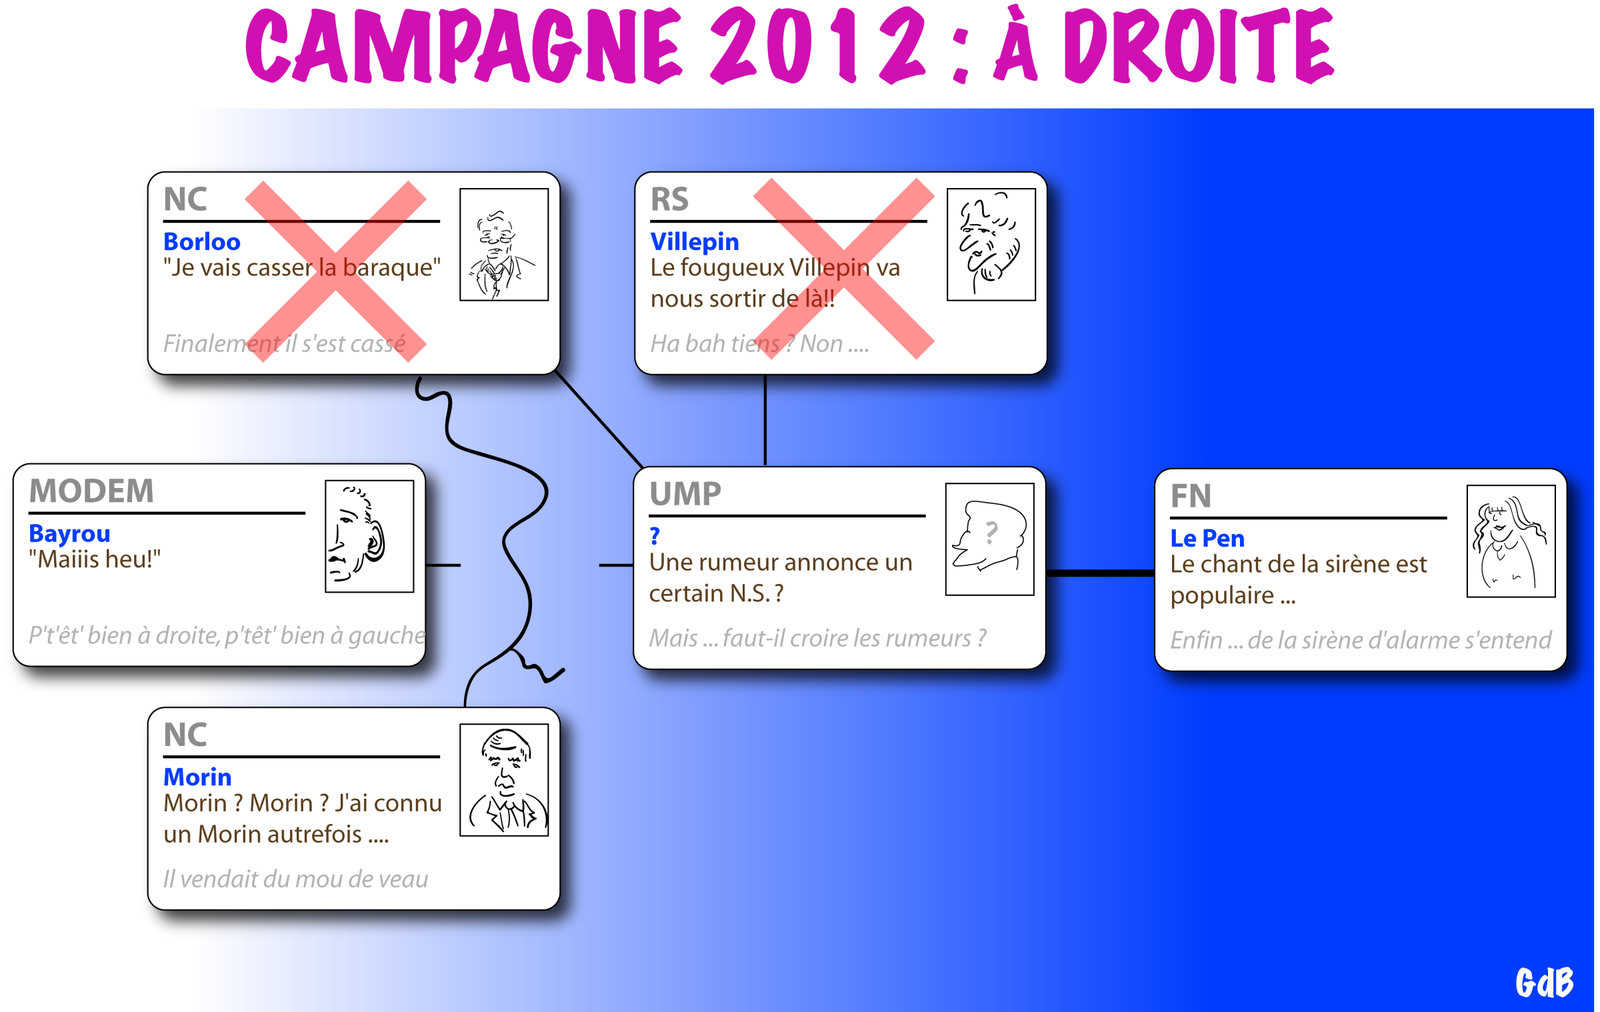 campagne2012Droite.png